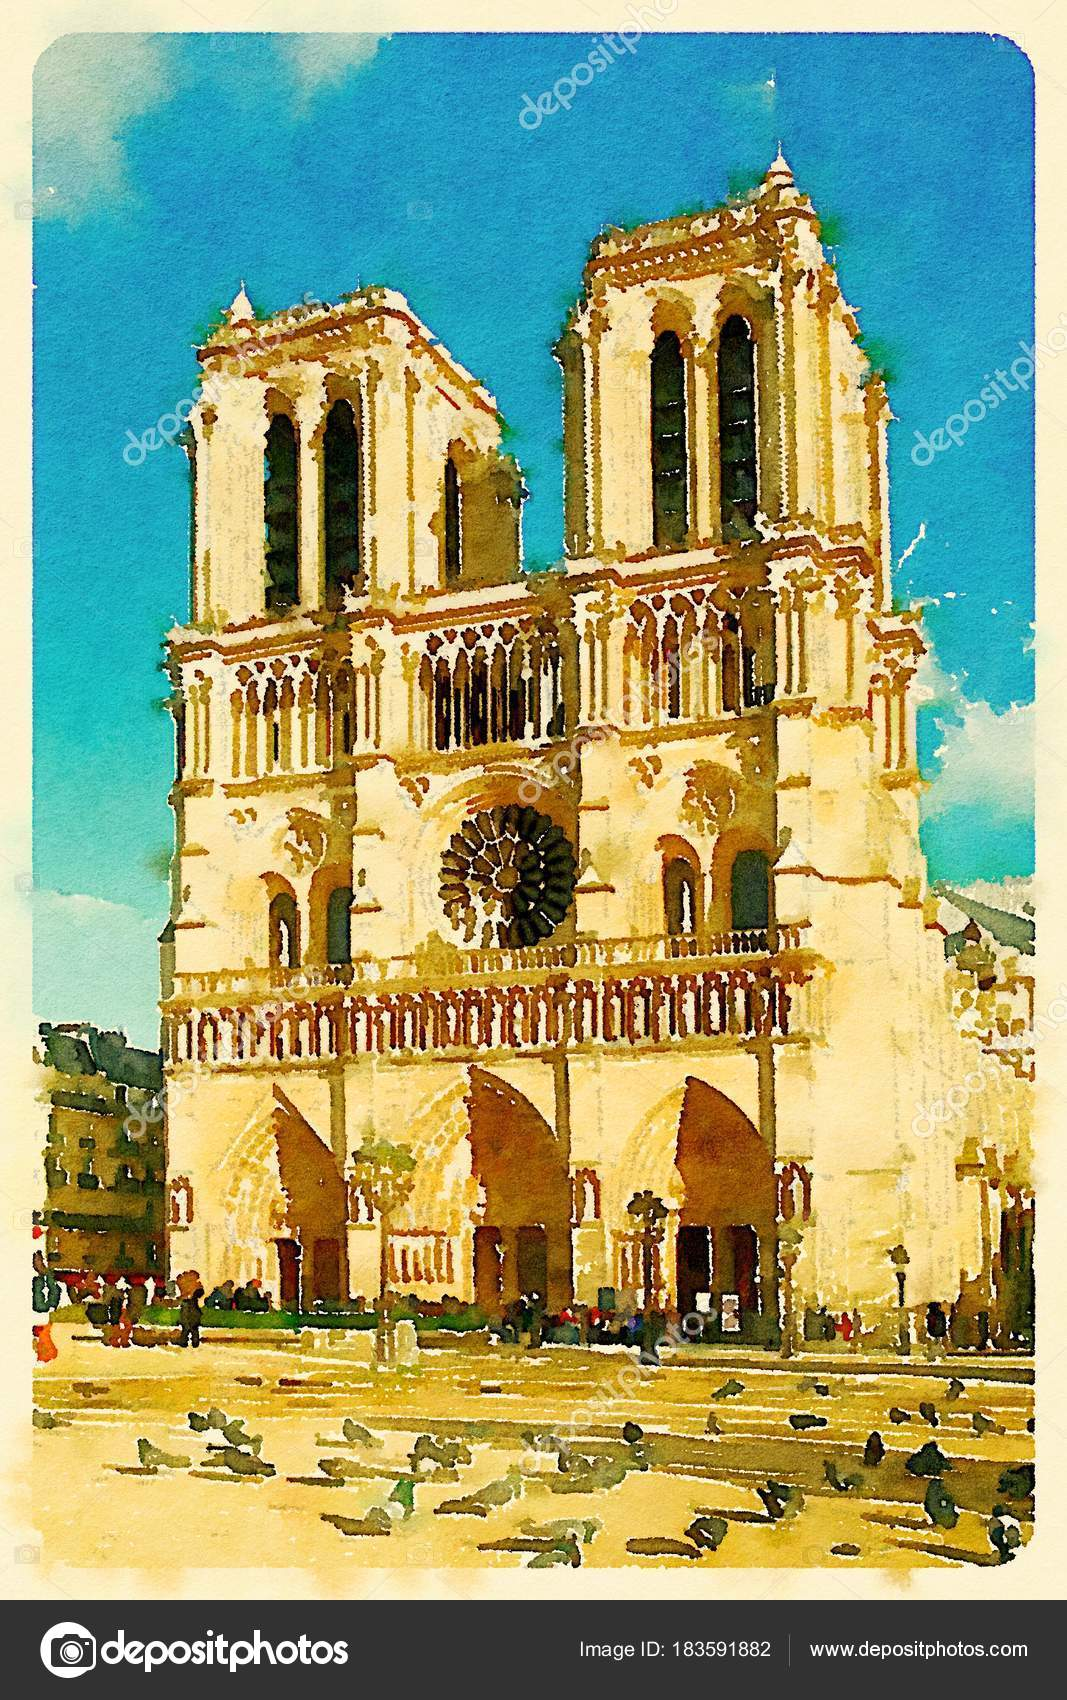 Notre Dame Cathedral Wallpaper Front View Cathedrale Notre Dame